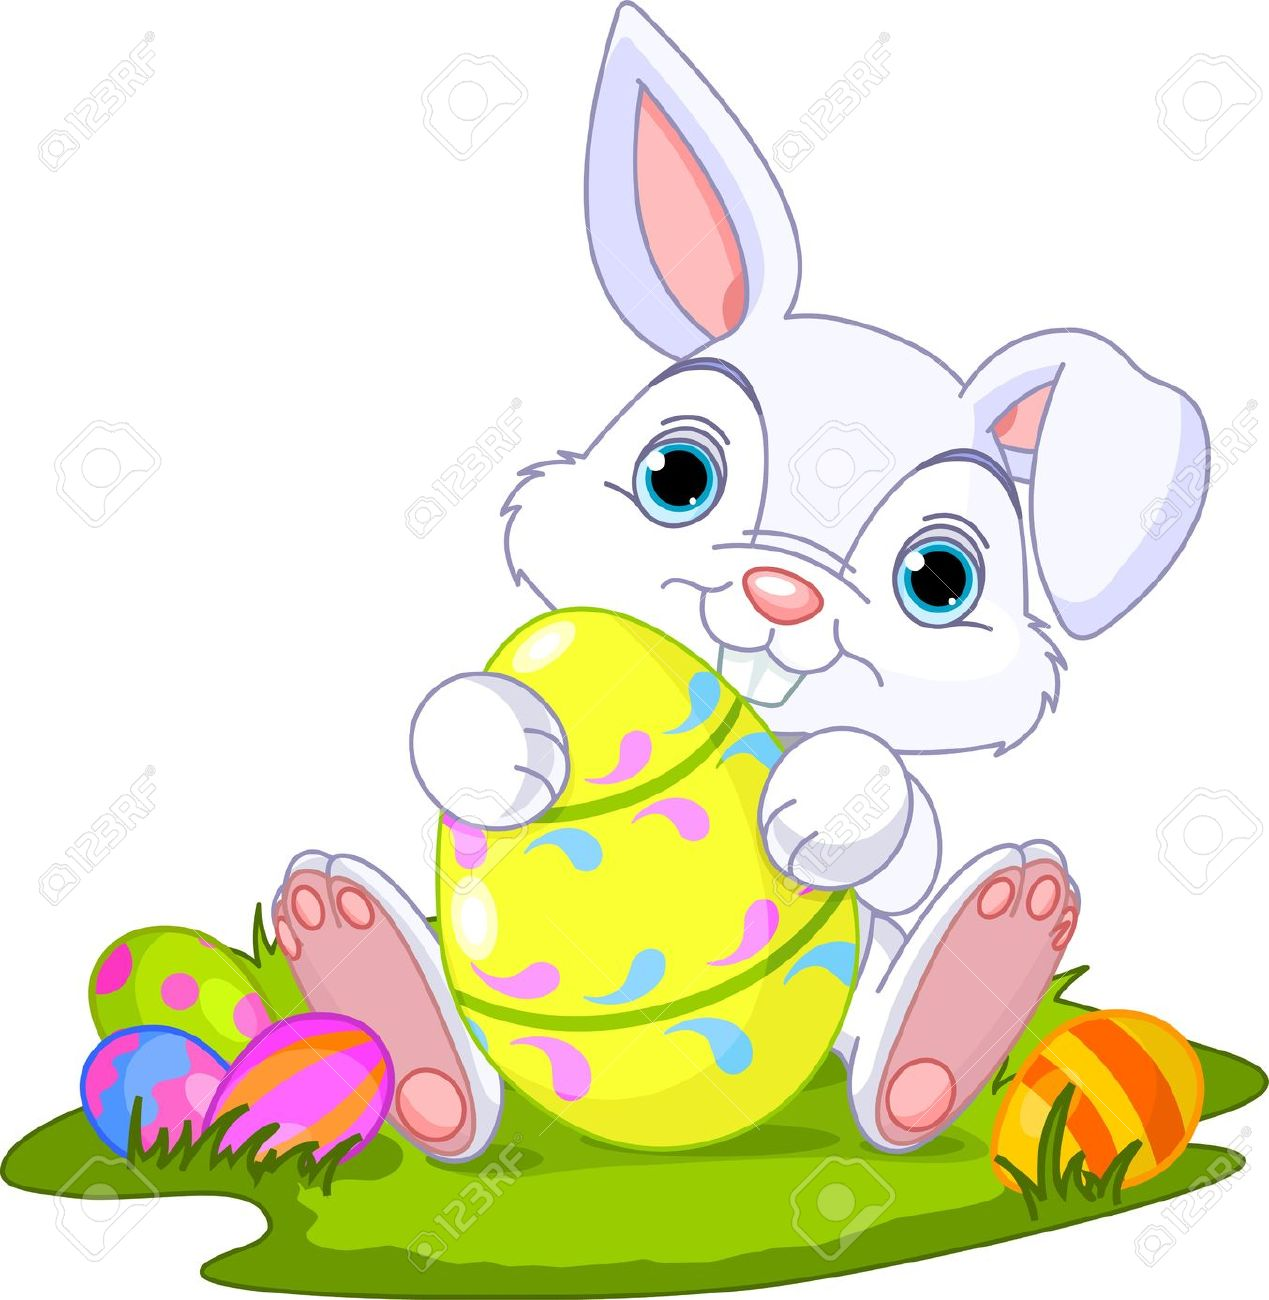 Bunny with a Big Easter Egg